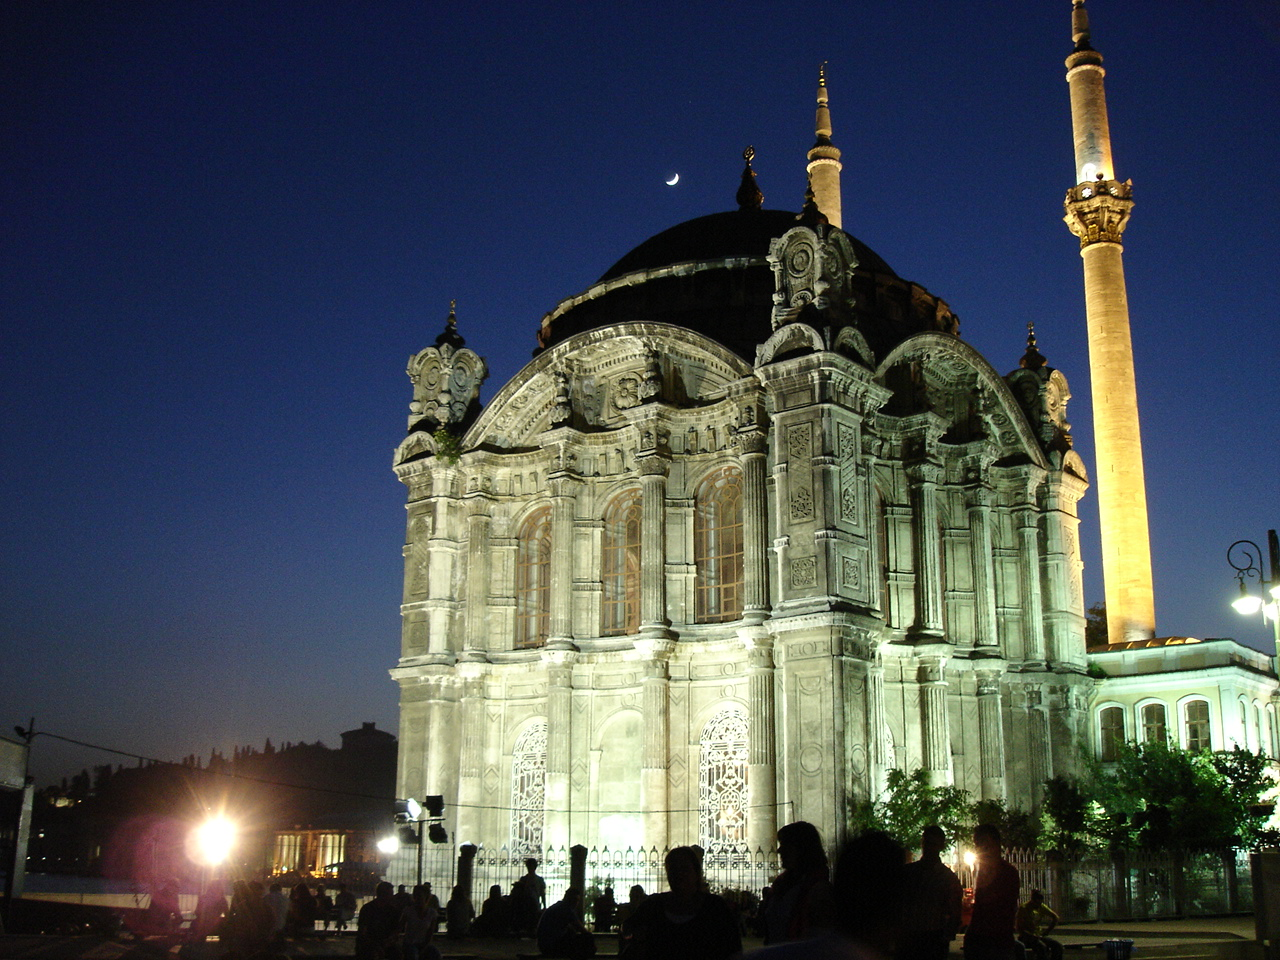 The Ortaköy Mosque, designed by Garabed and Nigoghayos Balyan, 1850s